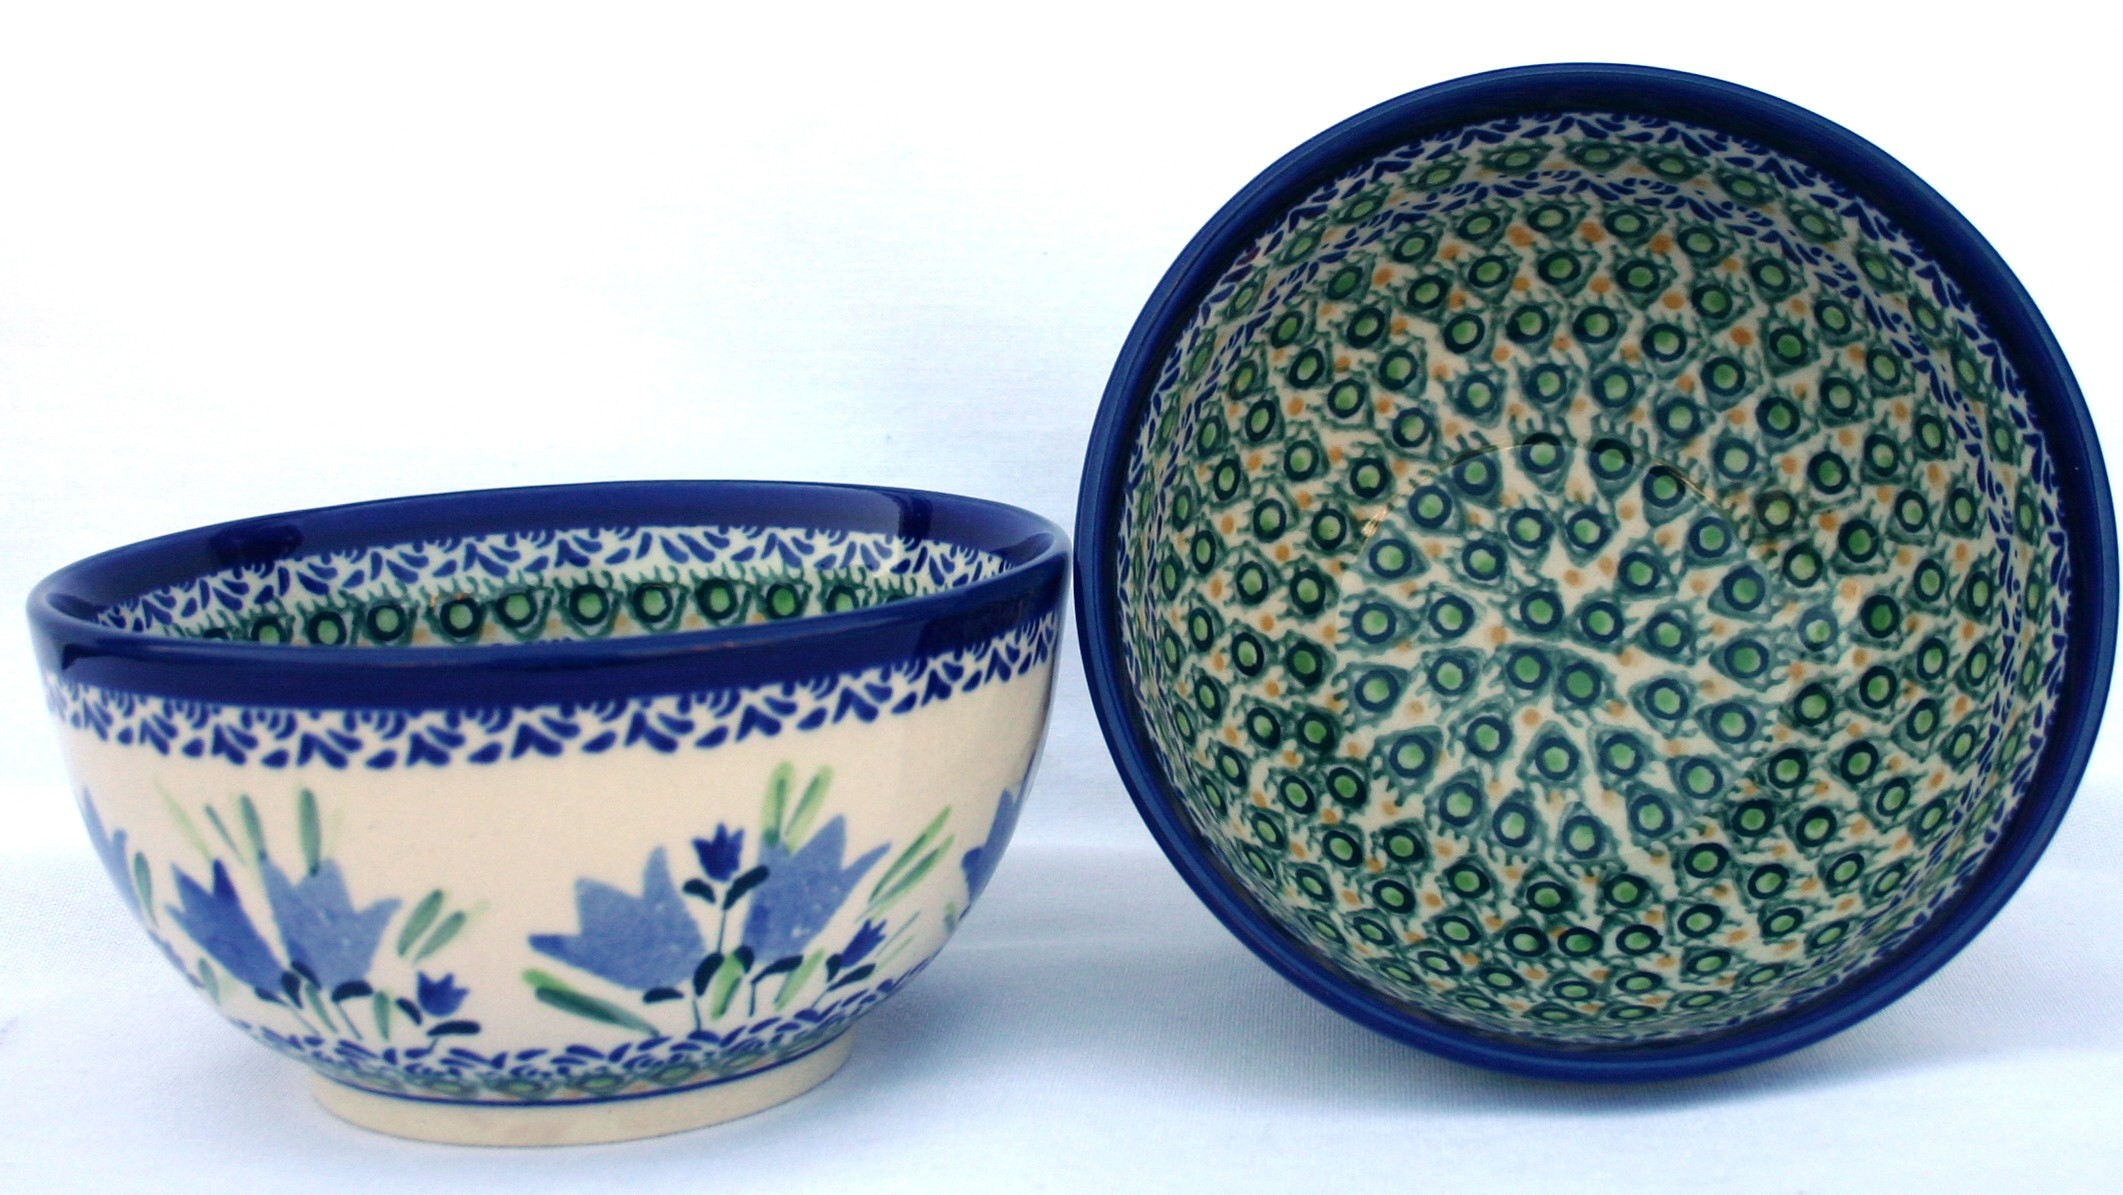 Pottery Avenue Unikat 2 Cup Cereal-All-Purpose Stoneware Bowl - 971-160AR Blue Tulip